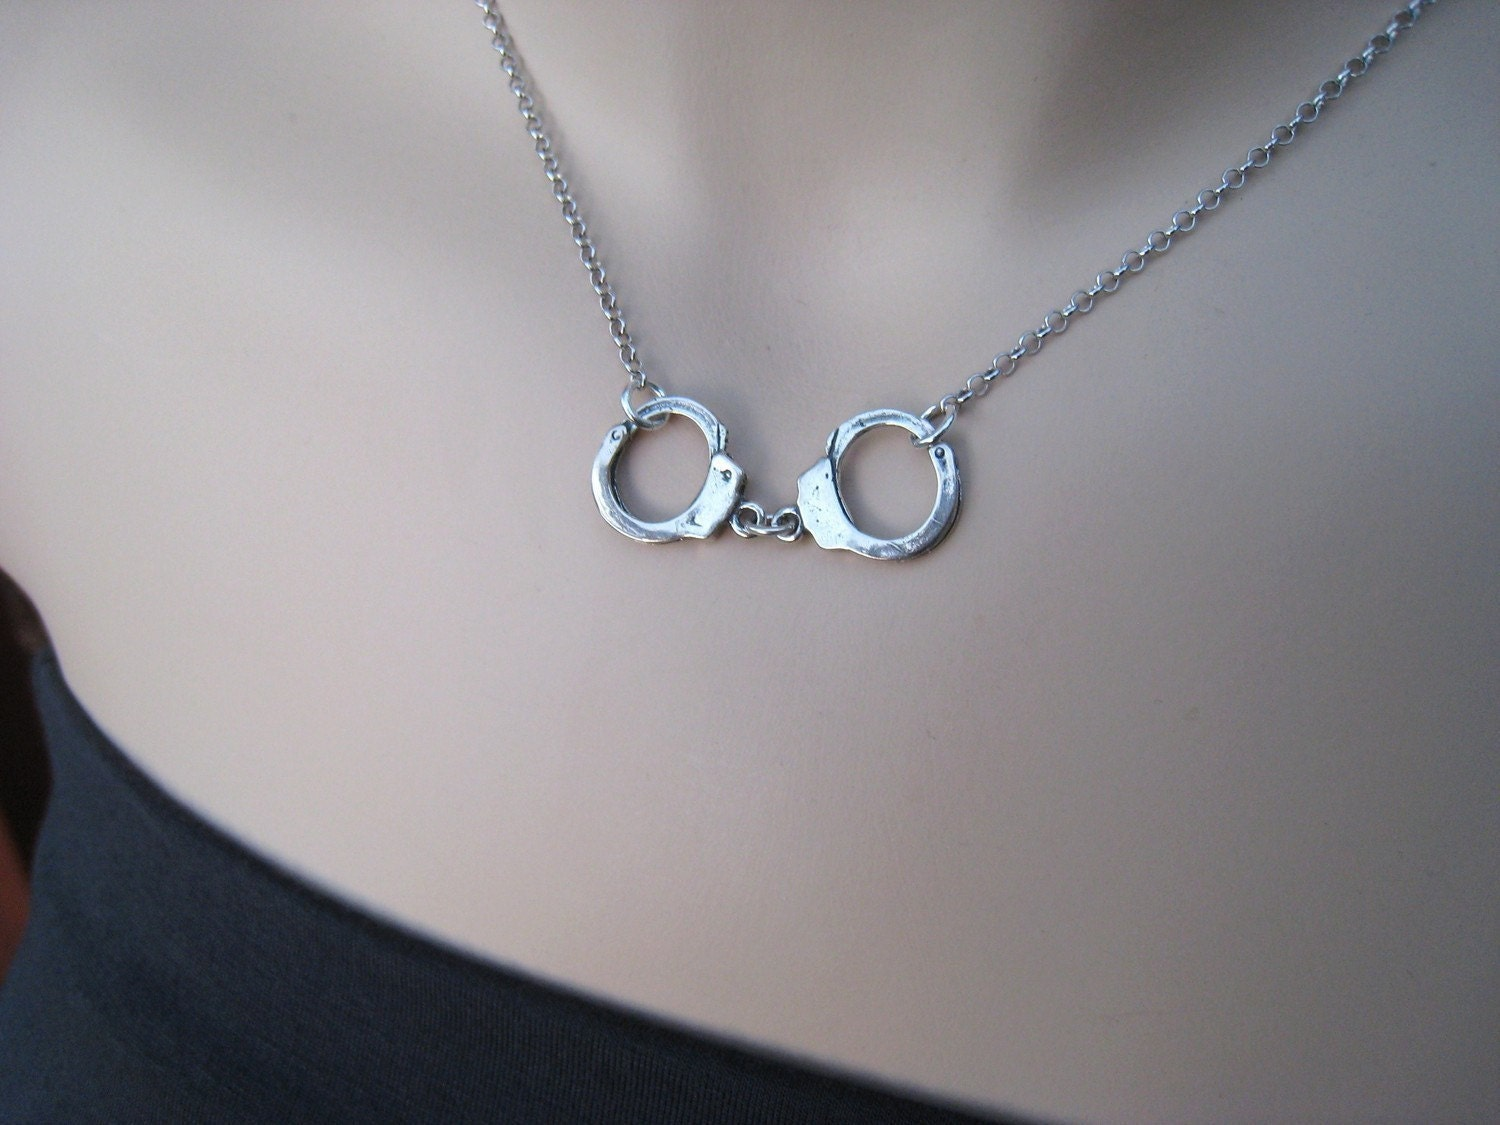 Handcuff Necklace Sterling Silver Larger Version Fall